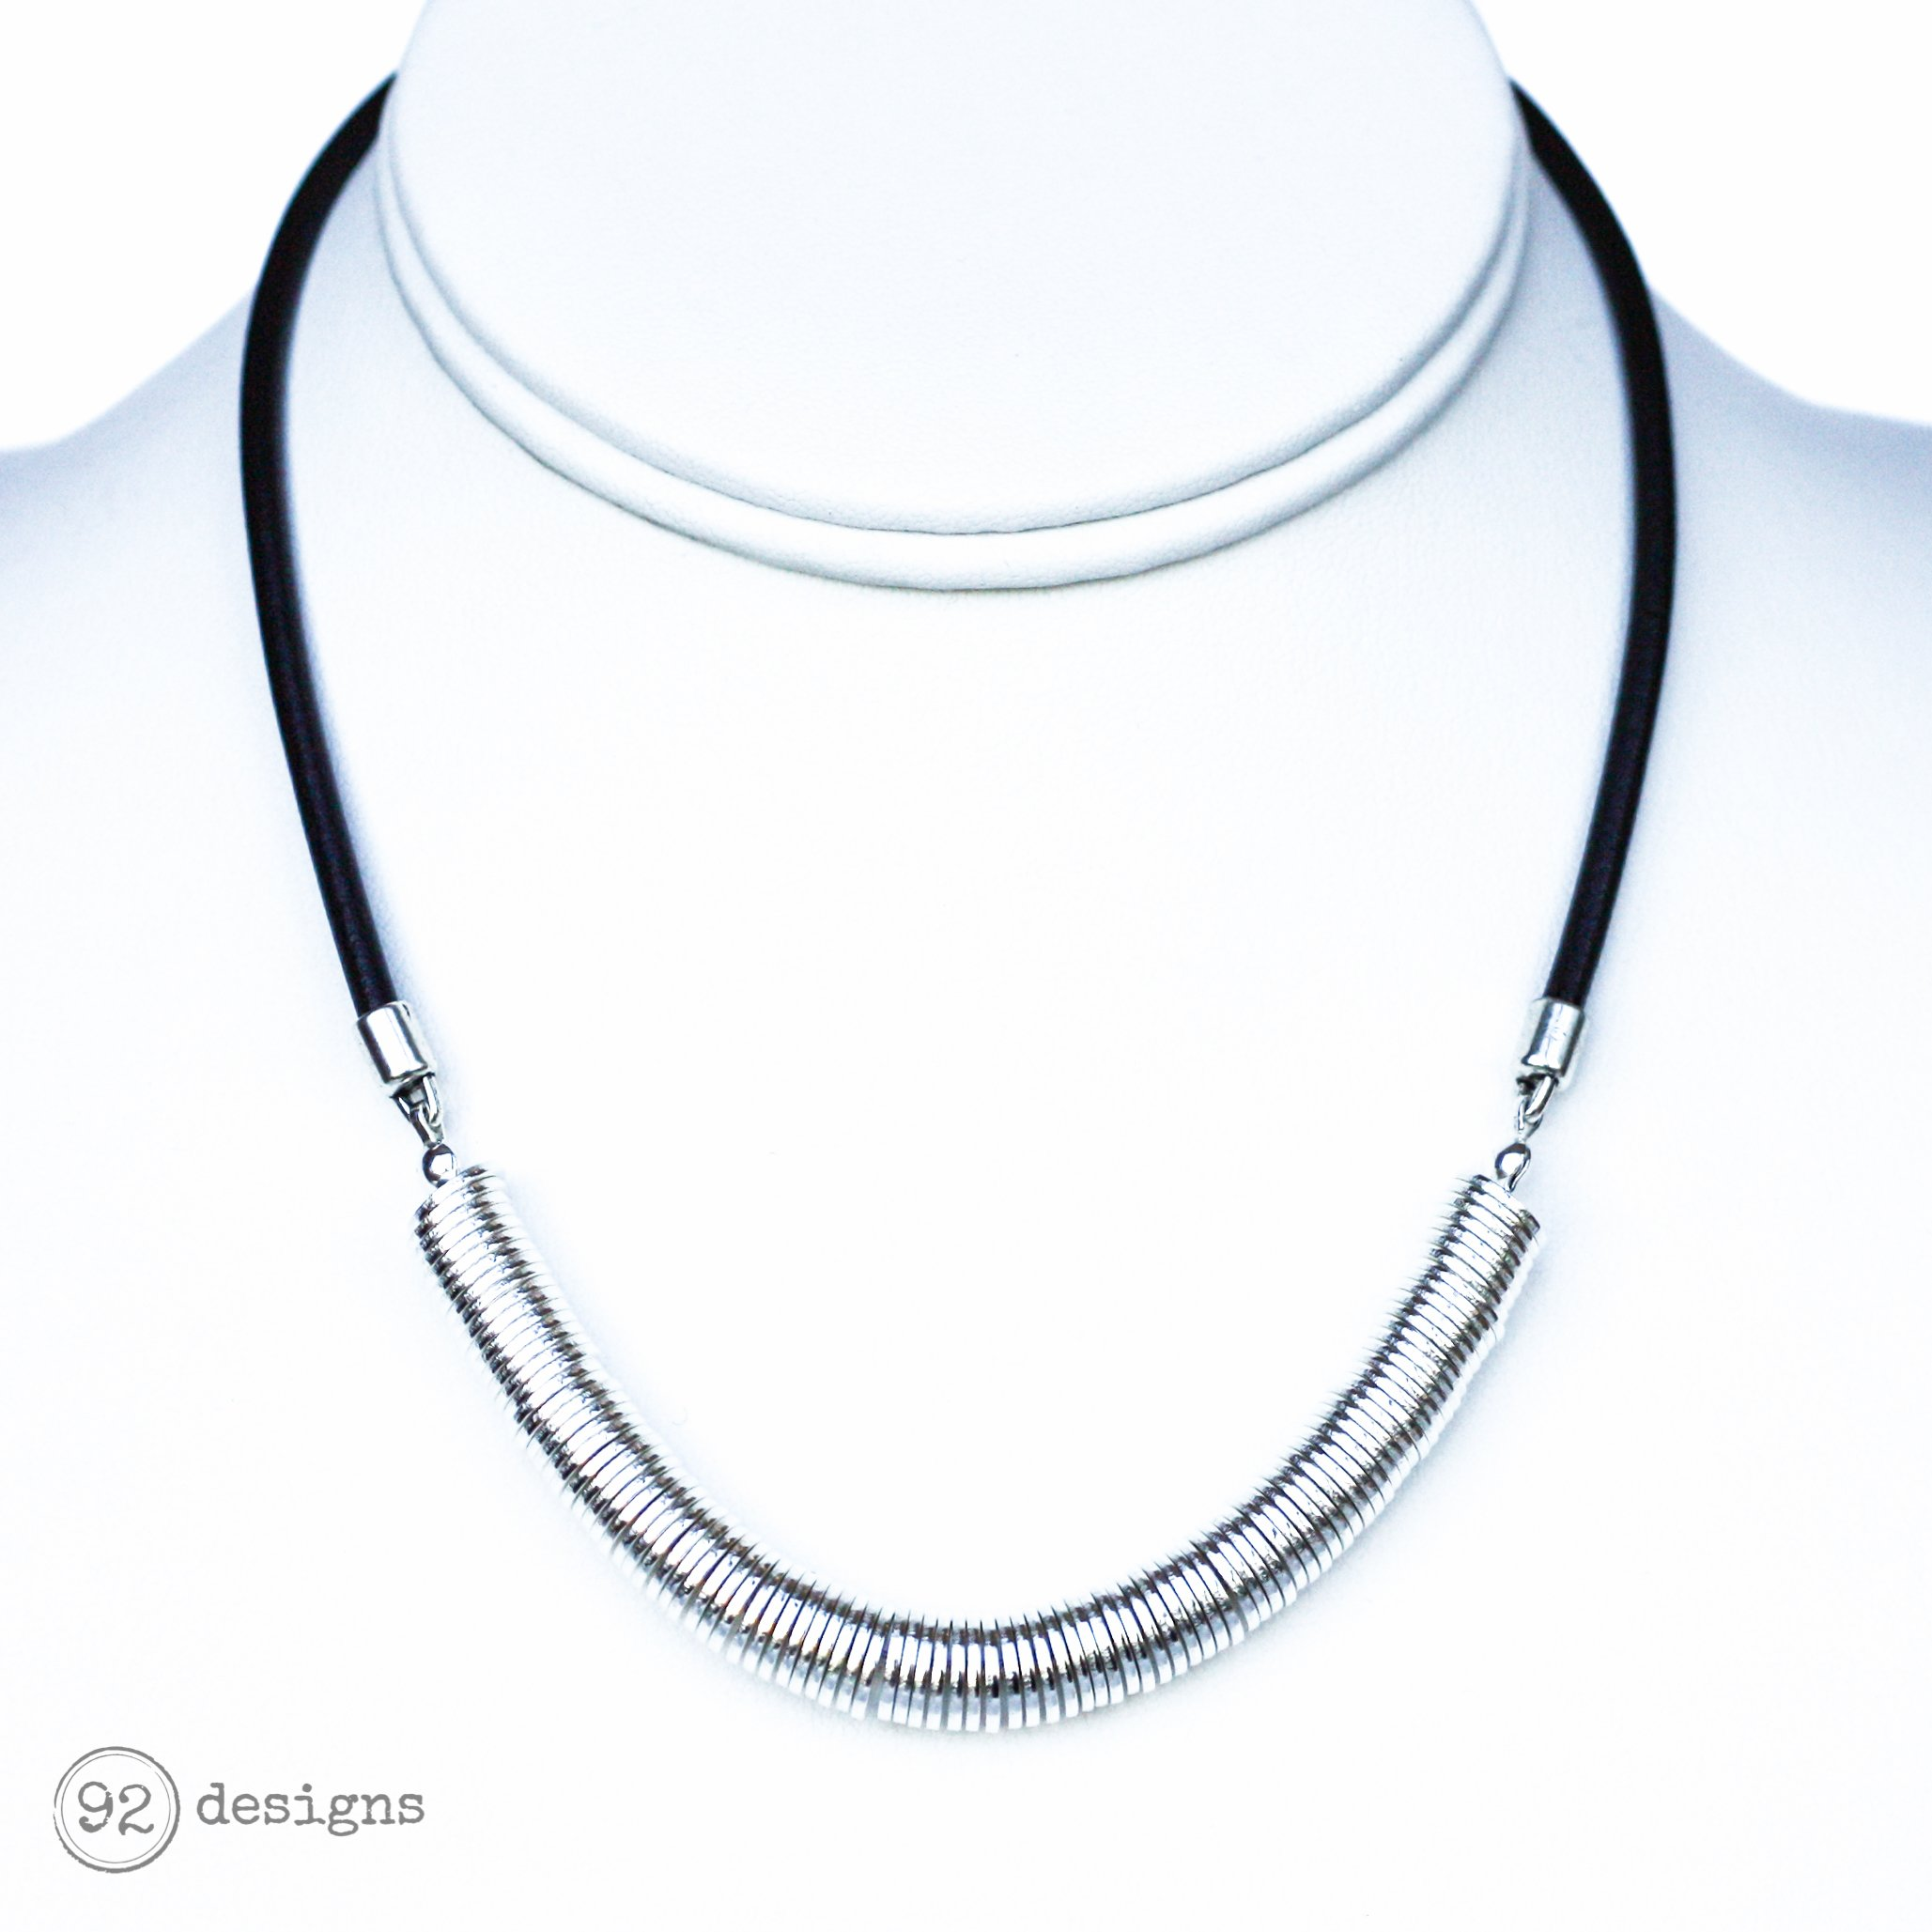 progressive close primary black maria new products wing york necklace mariablack